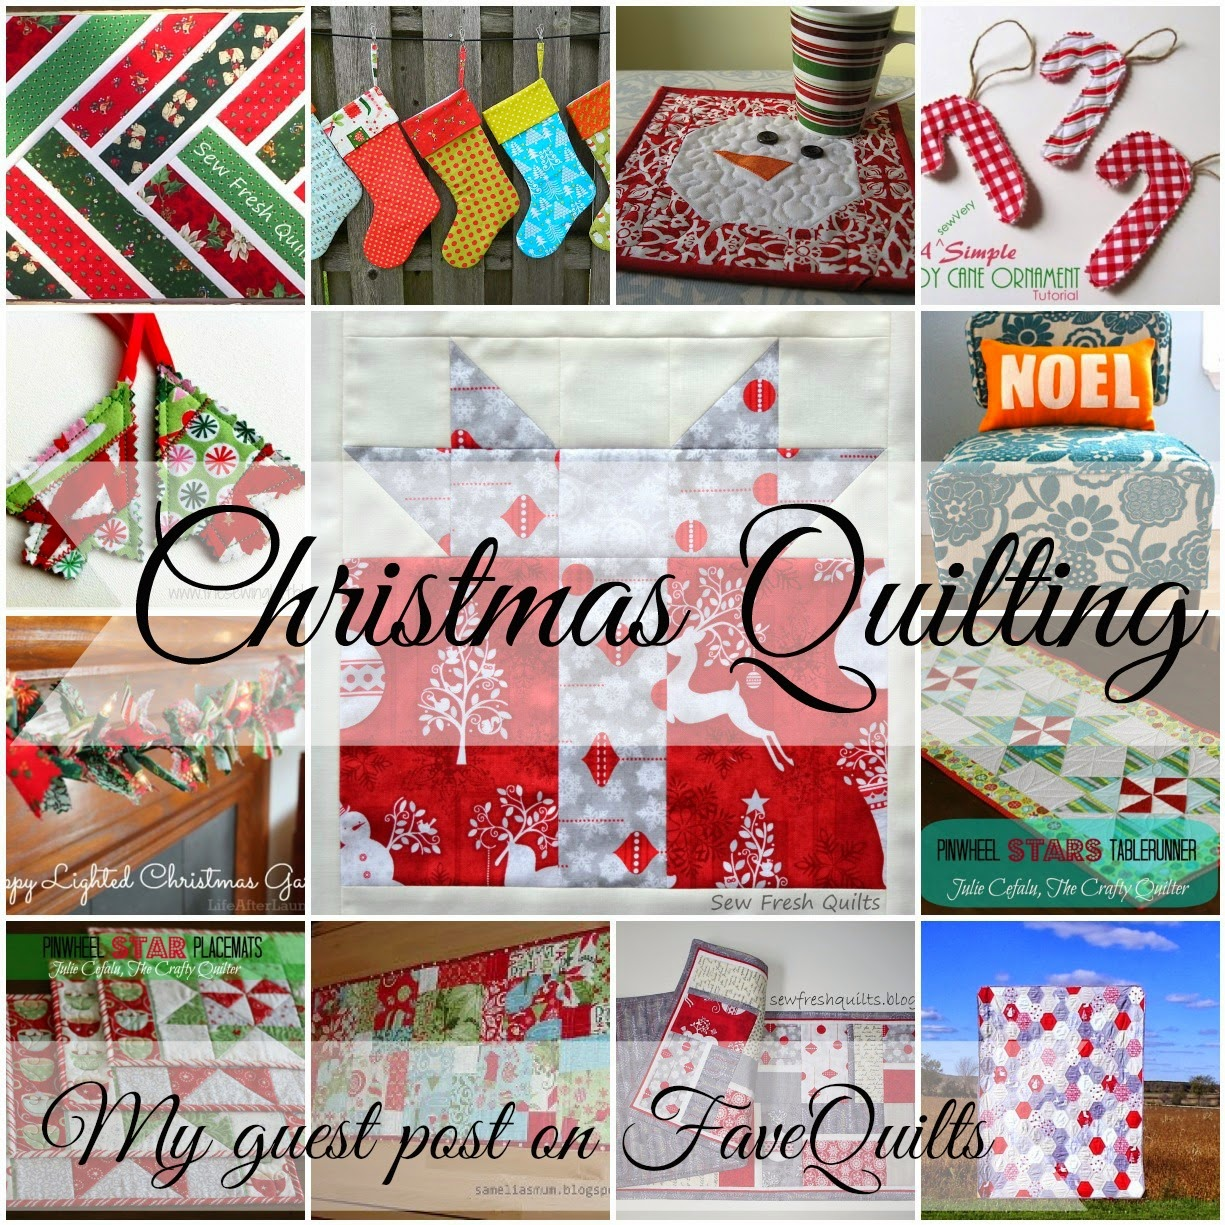 http://www.seamsandscissors.com/get-inspired-christmas-quilting-ideas